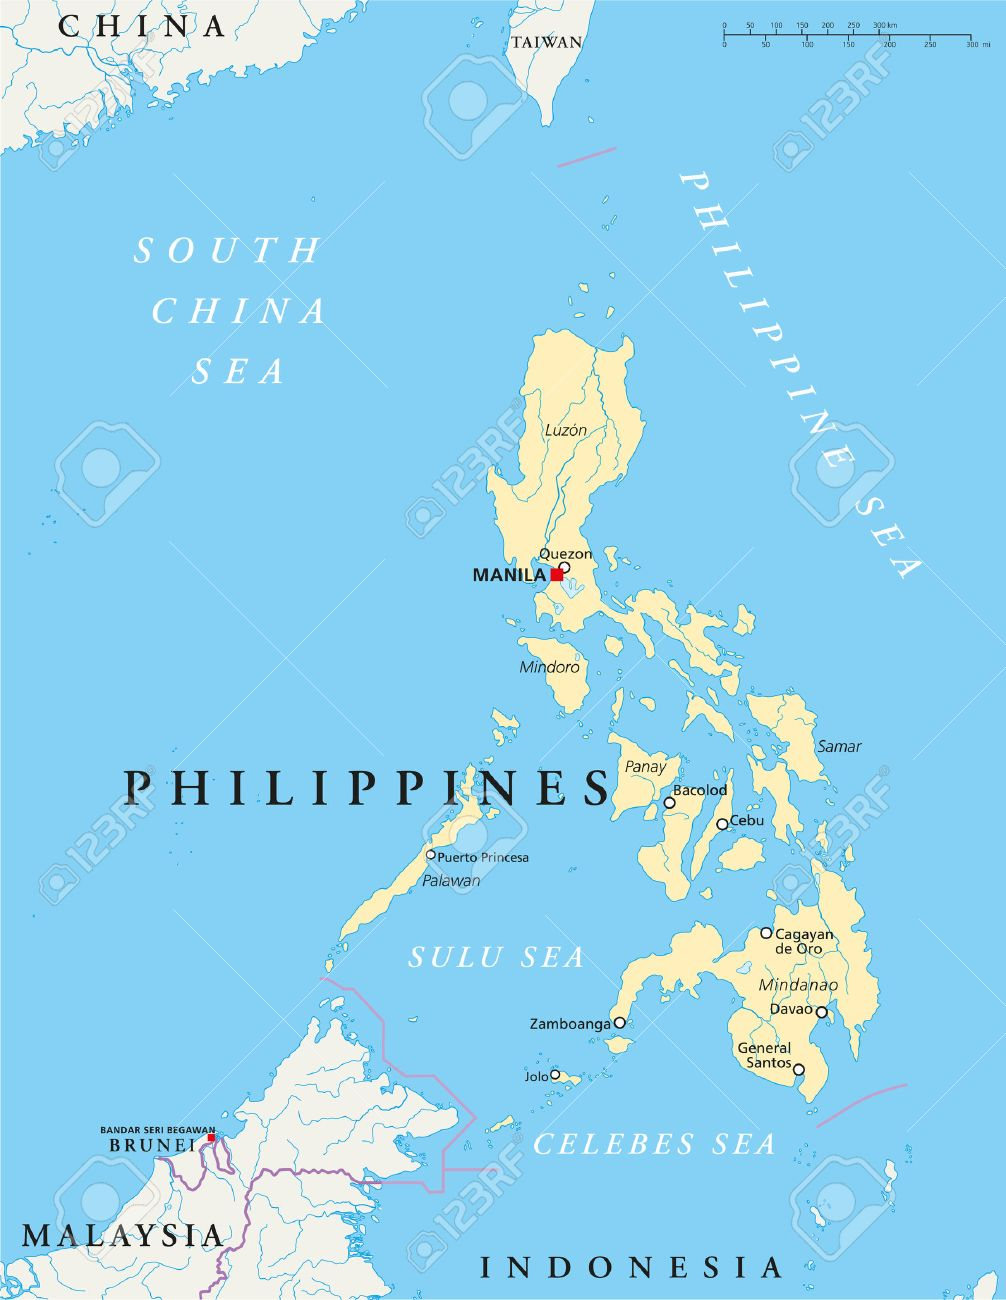 Philippines Political Map Philippines Political Map With Capital - Map of the philippines cities